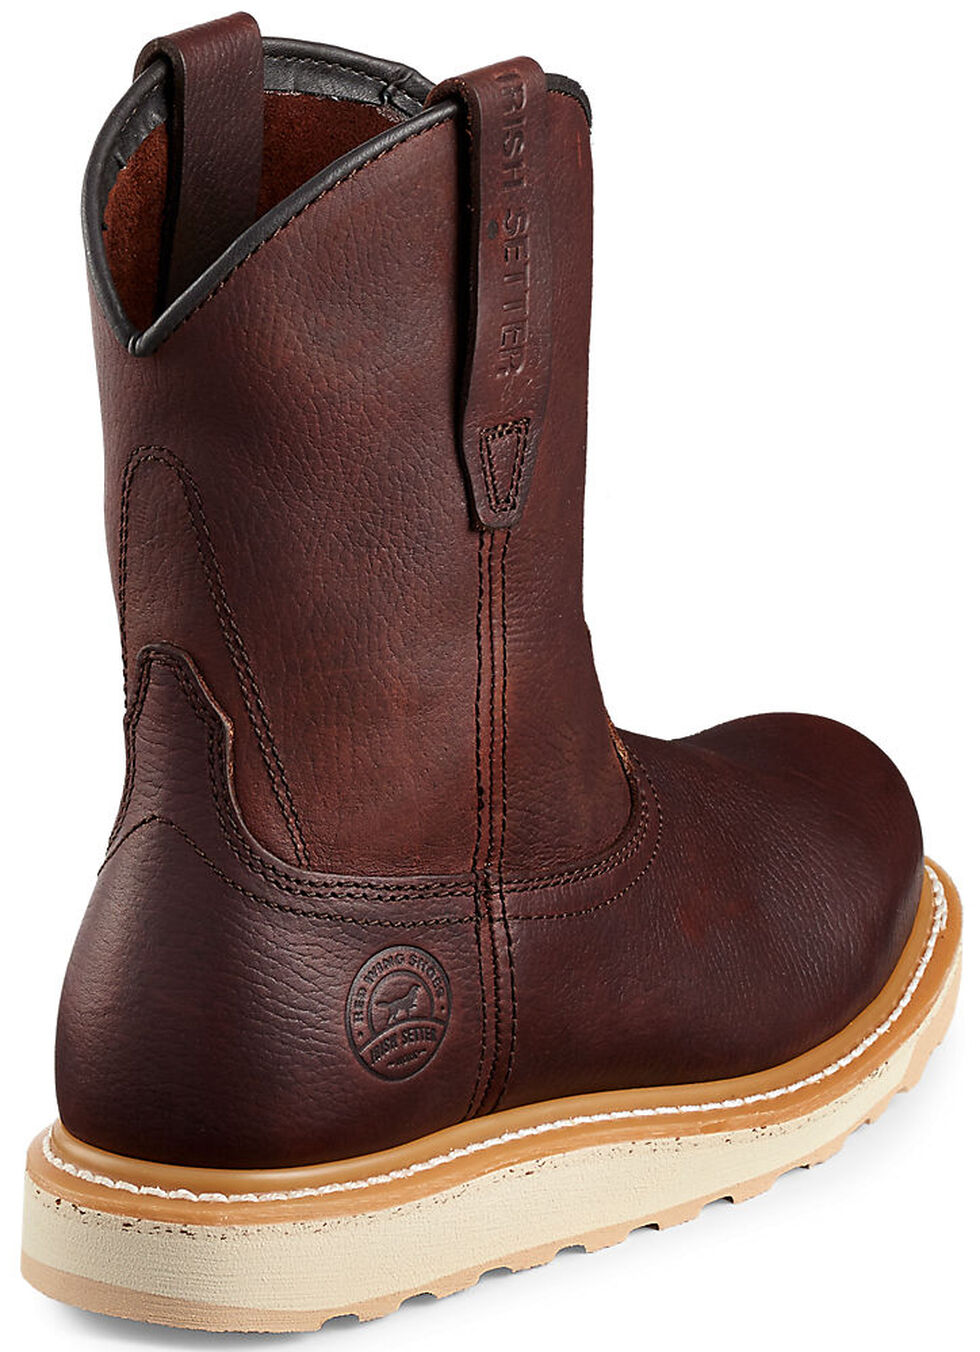 Irish Setter by Red Wing Shoes Men's Ashby EH Waterproof Work Boots - Aluminum Toe , Brown, hi-res